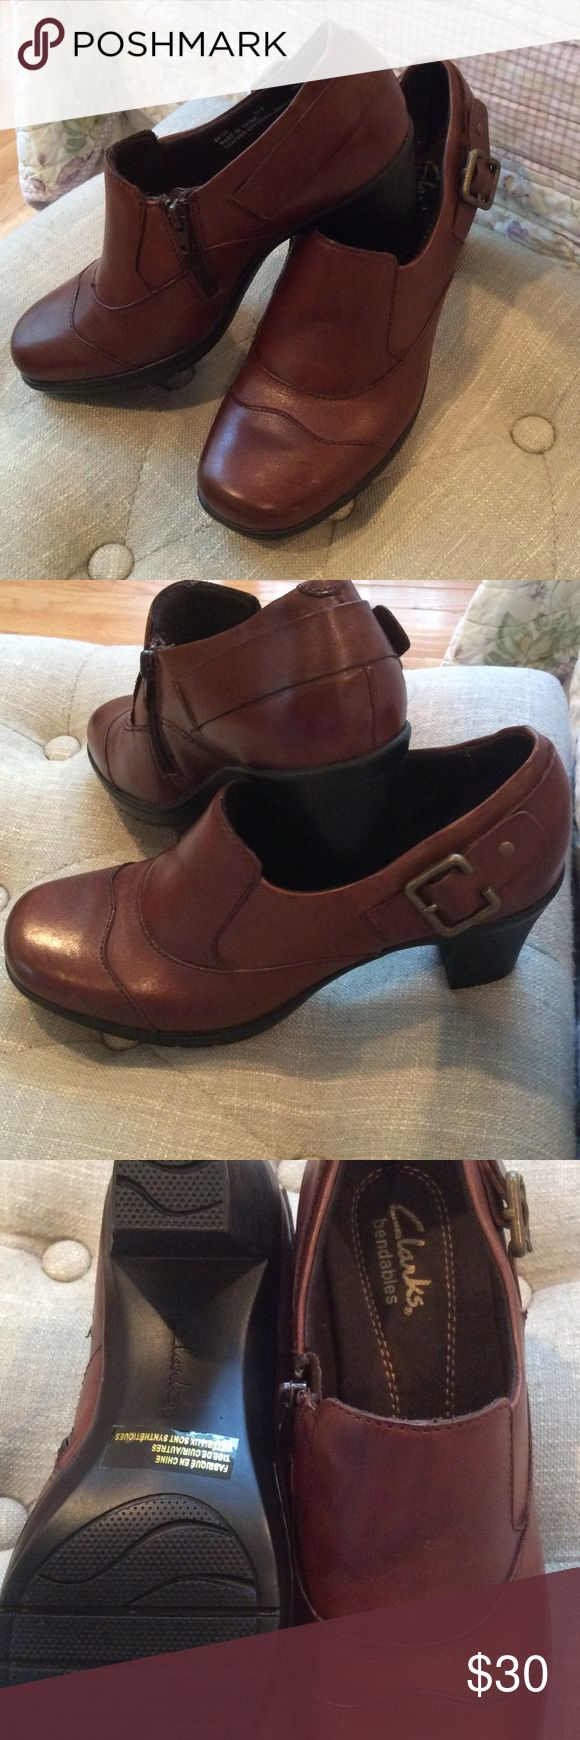 """Clarks Bendables Shoe Boots NWOT They are basically NWOT because they were tried on just inside the house.  The color is brown, not a deep dark brown and not a tan brown either.  I face sometimes they can take on a burgundy hue as well depending on the lighting.  Size is 61/2M.  They are comfortable and bendable.  About a 2"""" thick heel.  Has some nice traction on the bottom of them also.  Zipper is real but not needed to slip them on.   The buckle on the side is just for decoration.  No box…"""